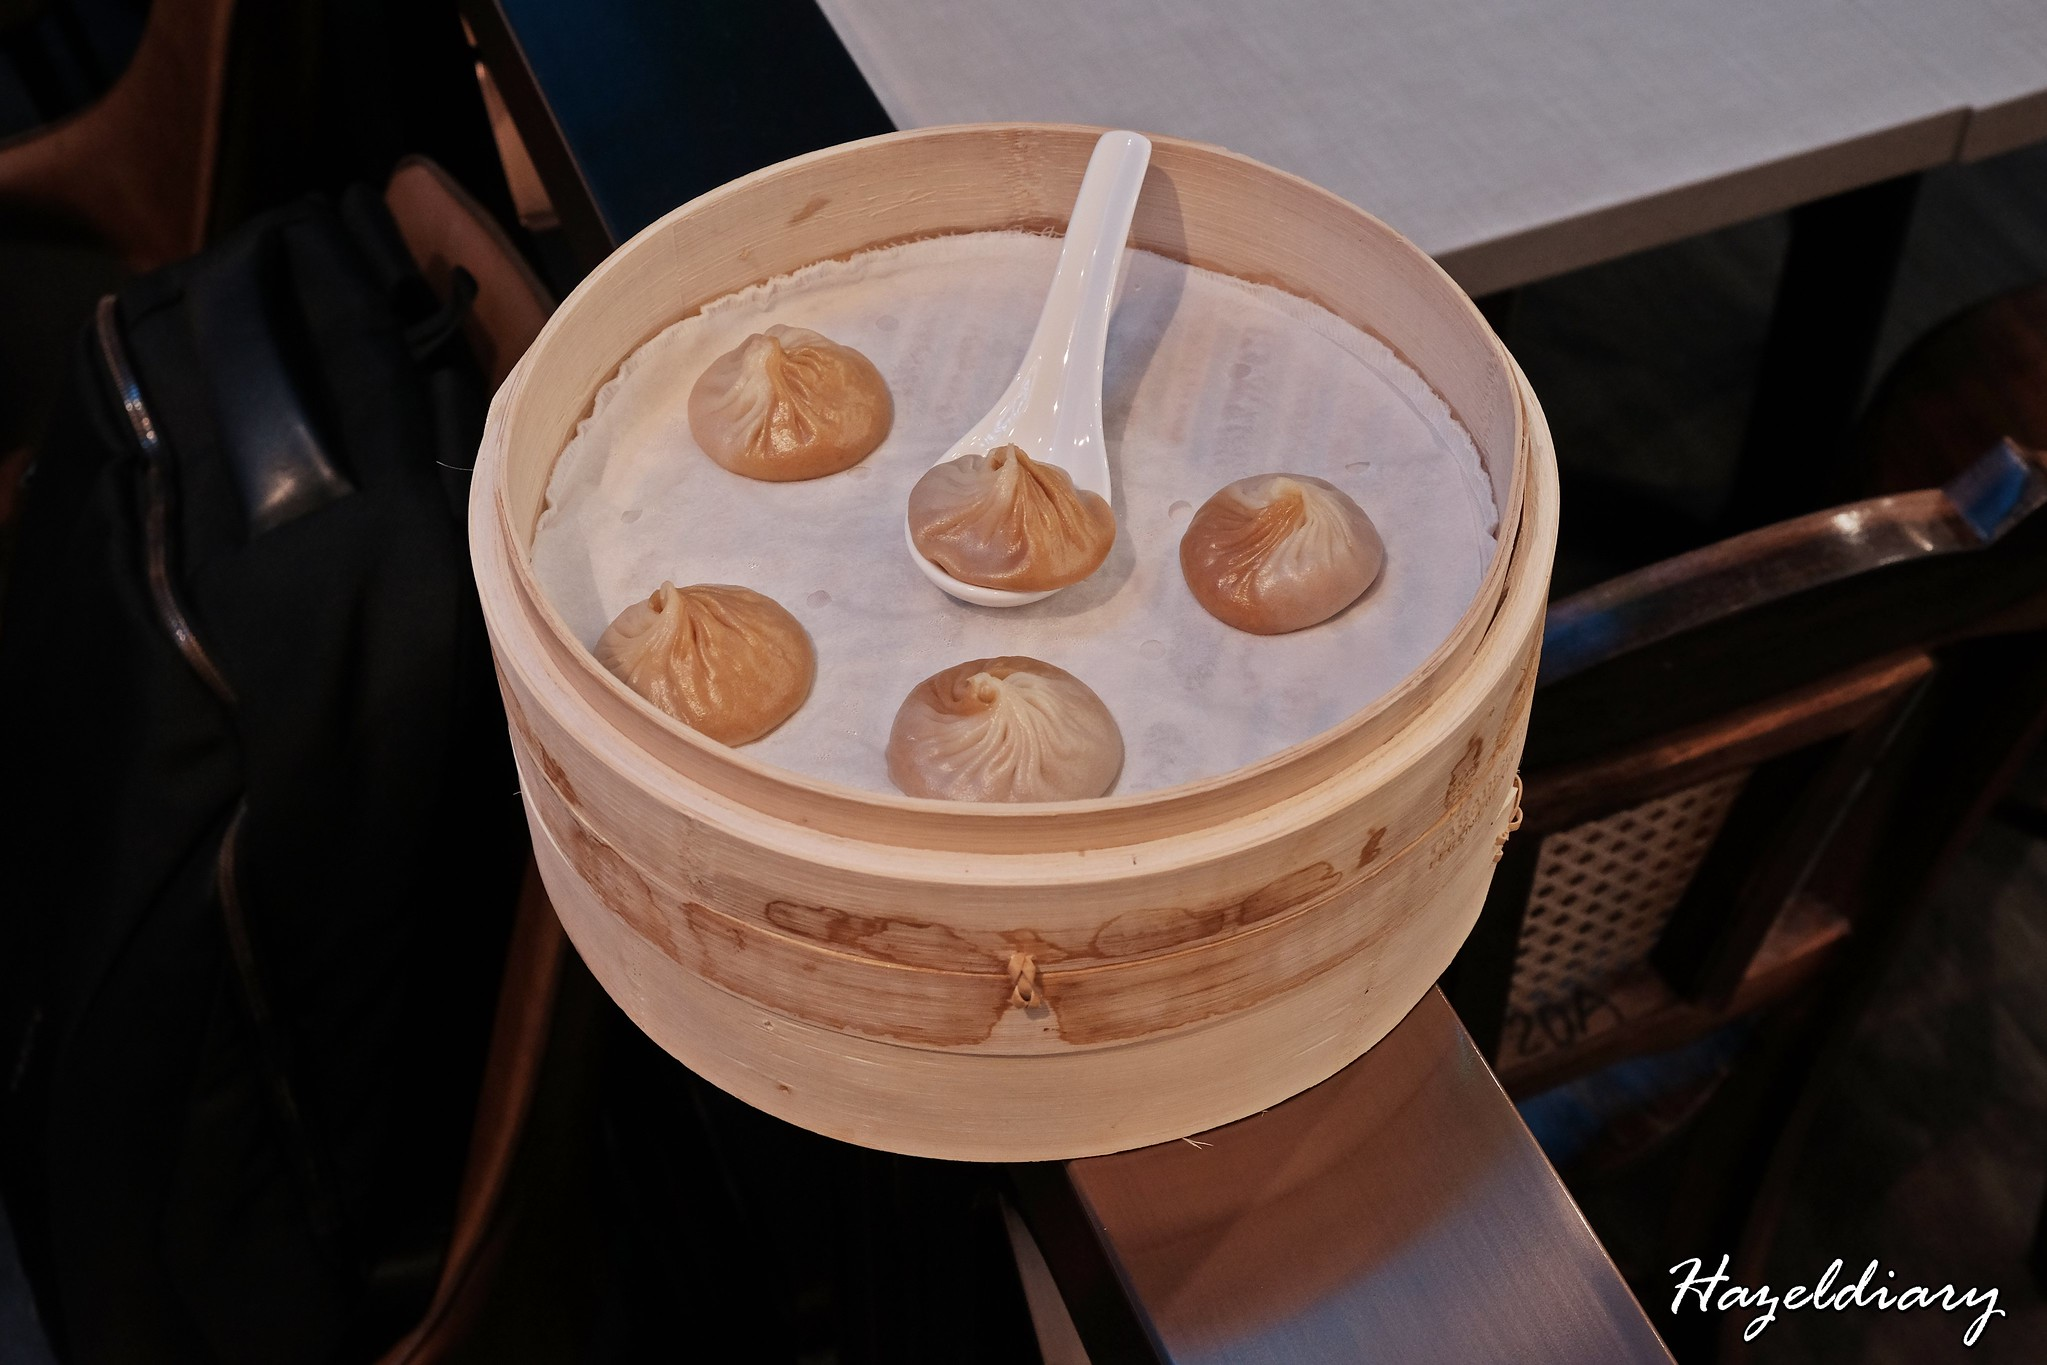 Paradise Dynasty Suntec City Outlet-Brown Sugar Xiao Long Bao